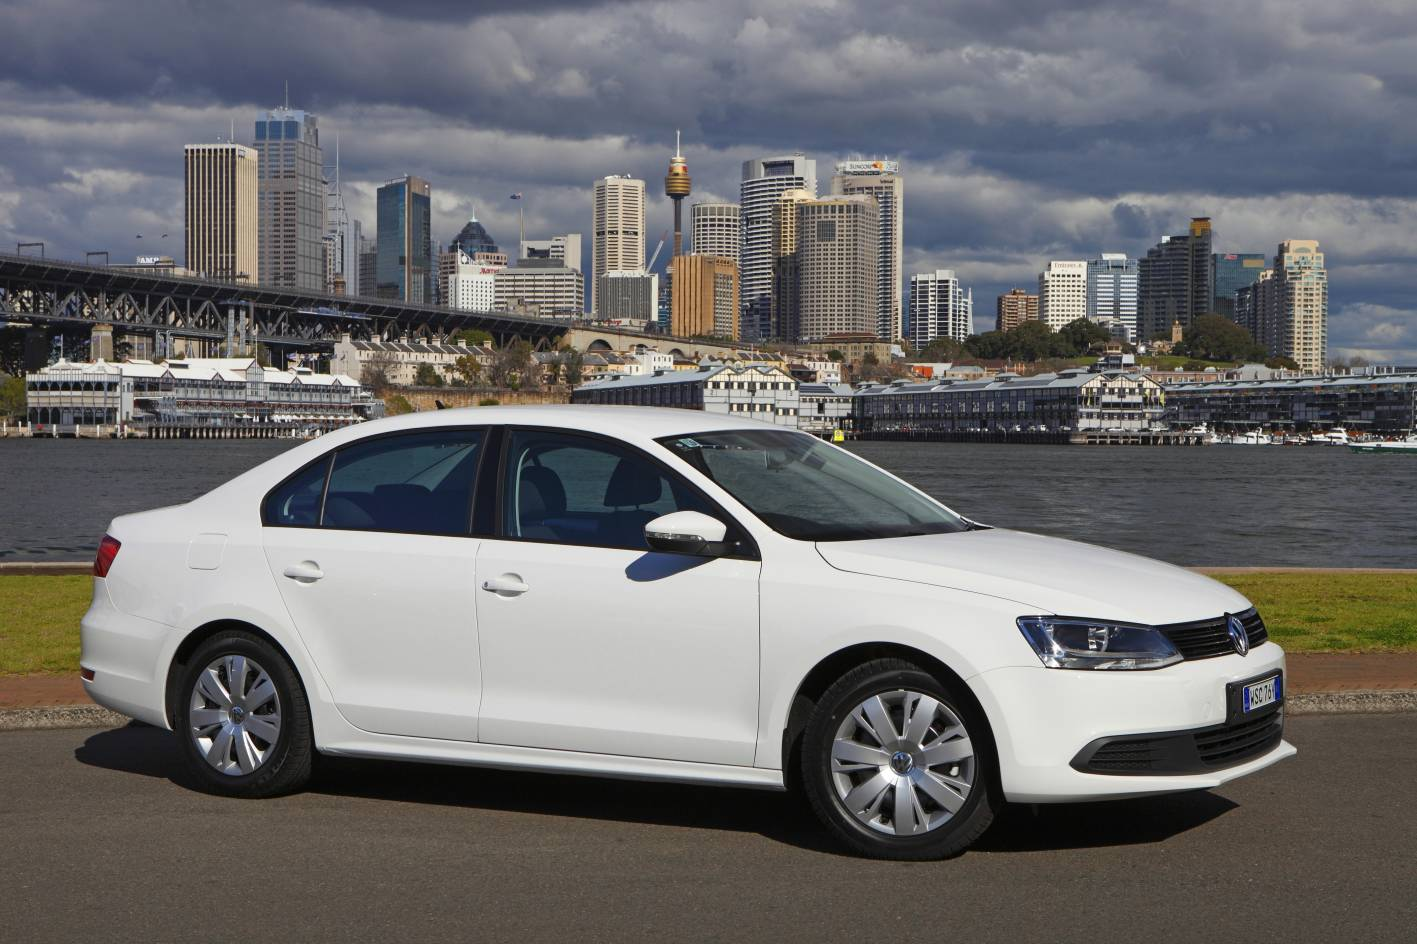 vw jetta interesting news with the best vw jetta pictures on. Black Bedroom Furniture Sets. Home Design Ideas